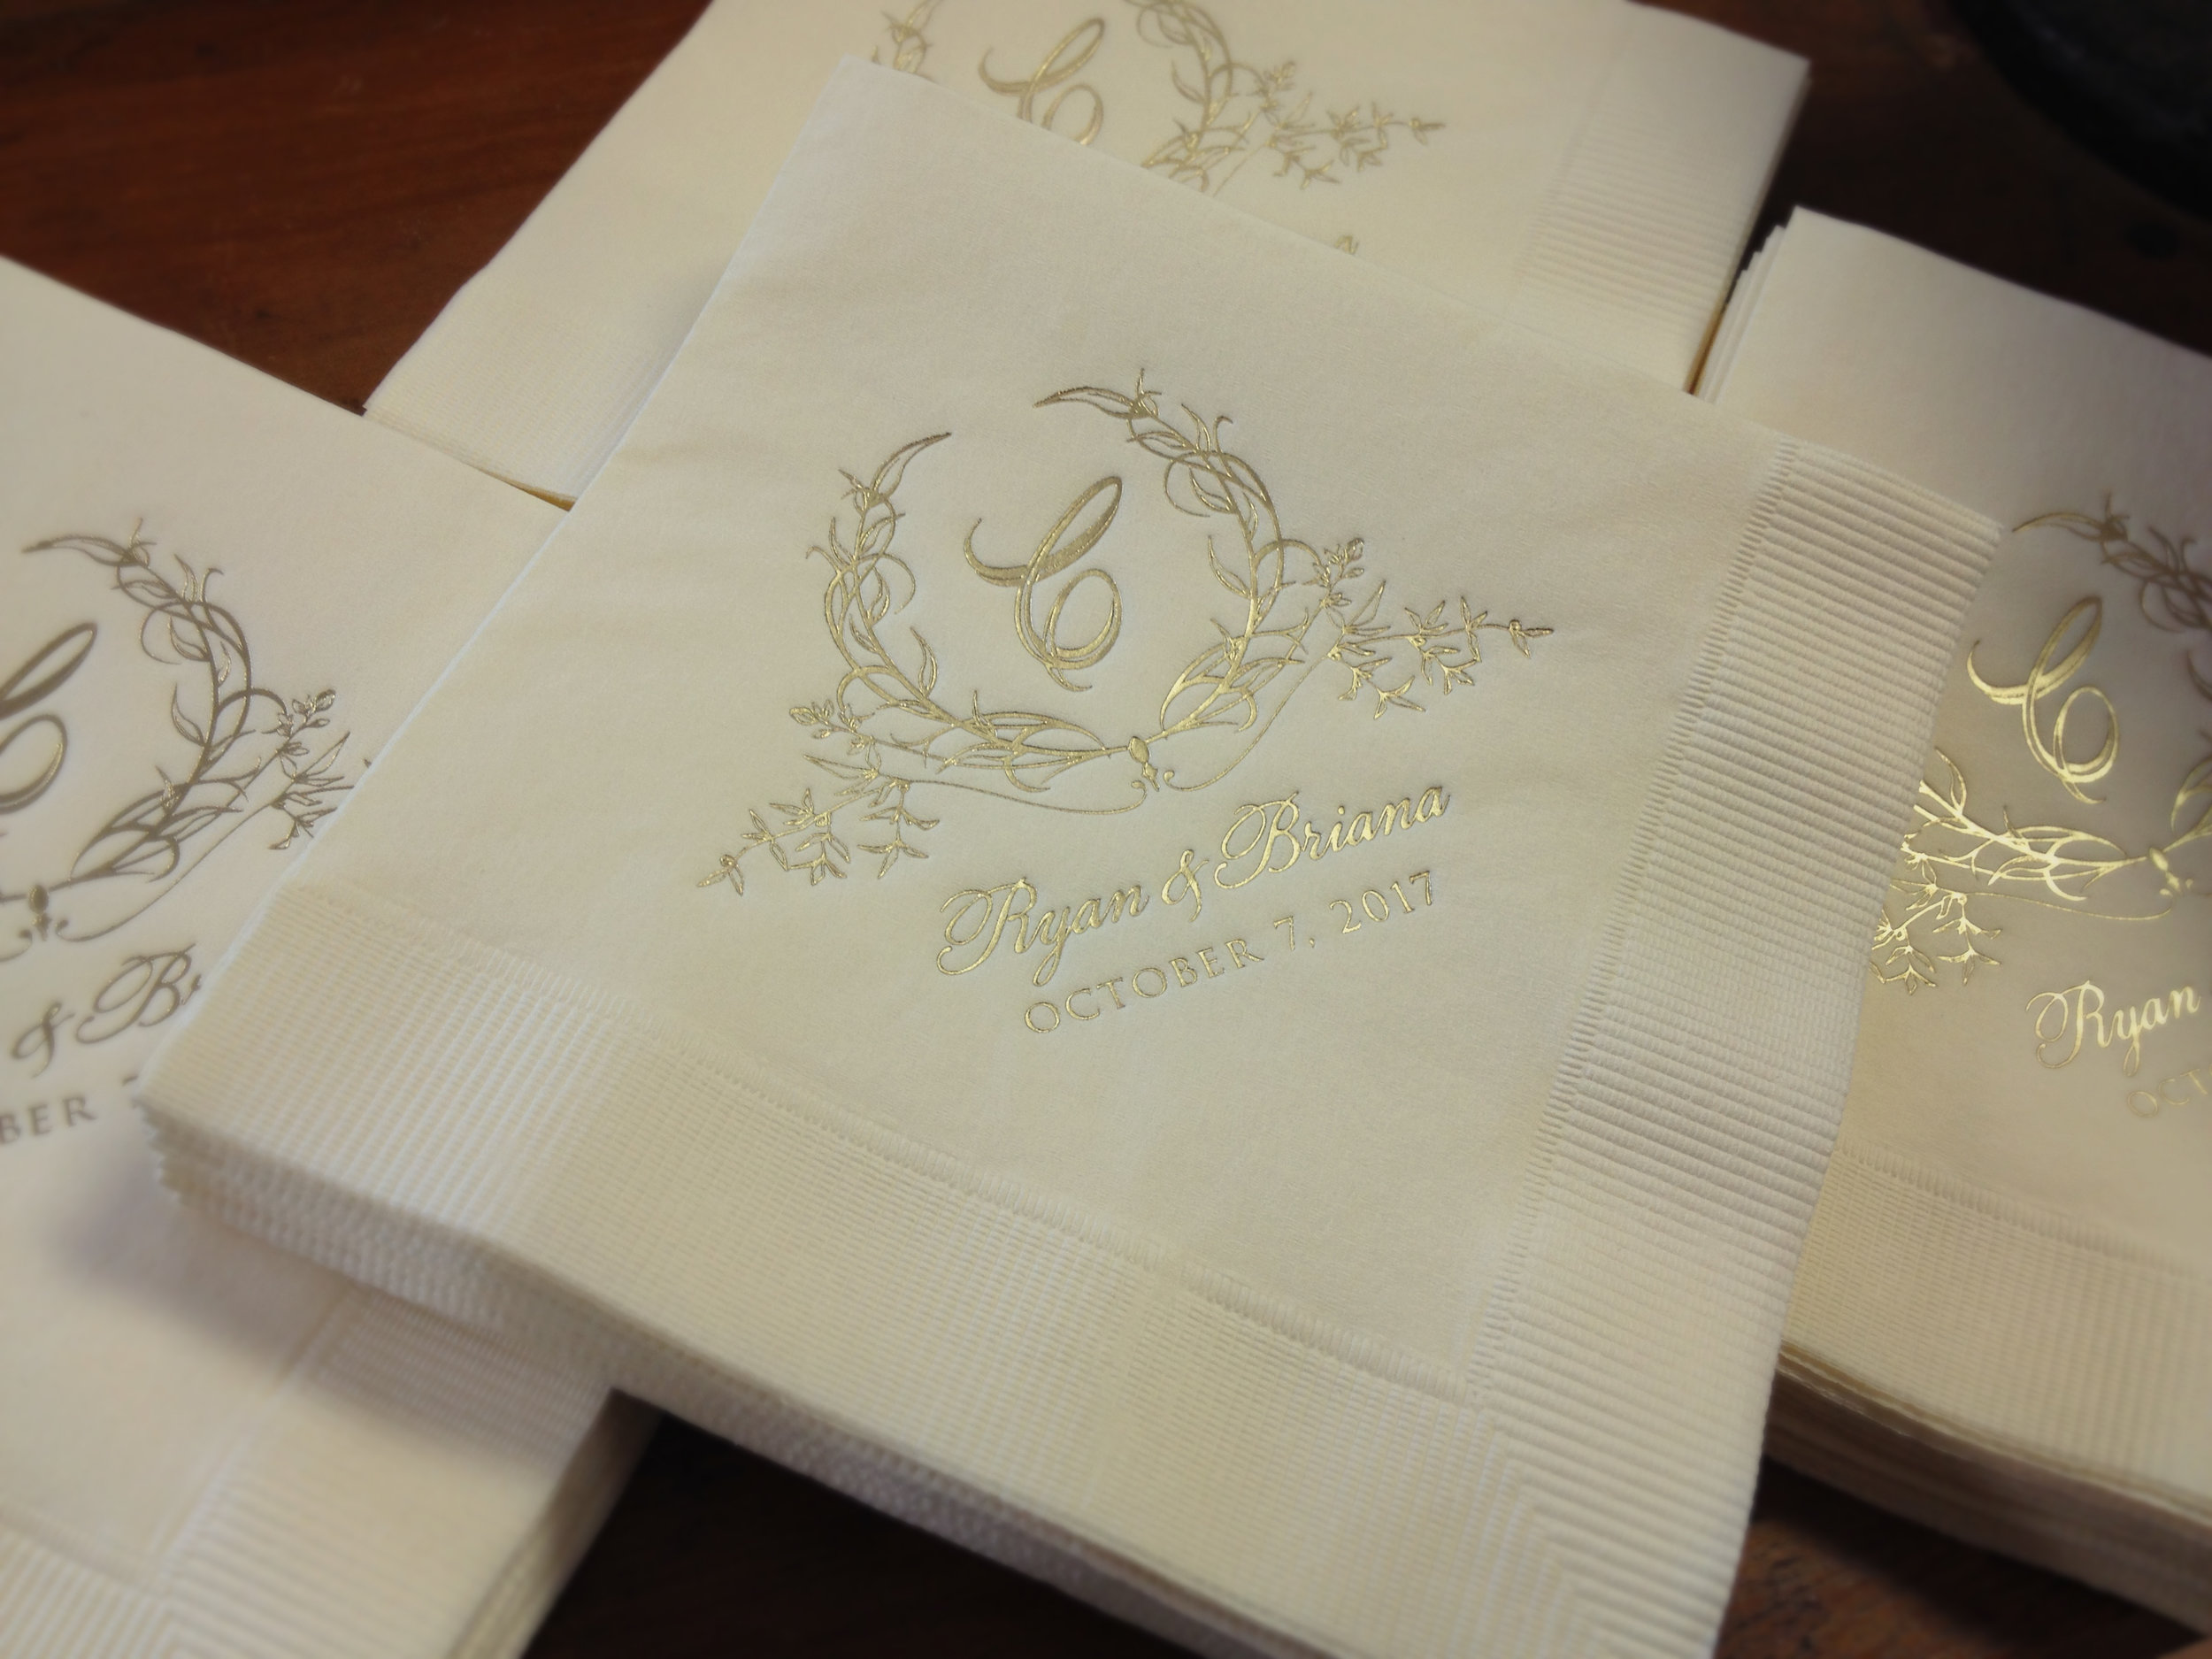 cocktail-ecru-napkin-gold-foil-custom-monogram-design.jpg